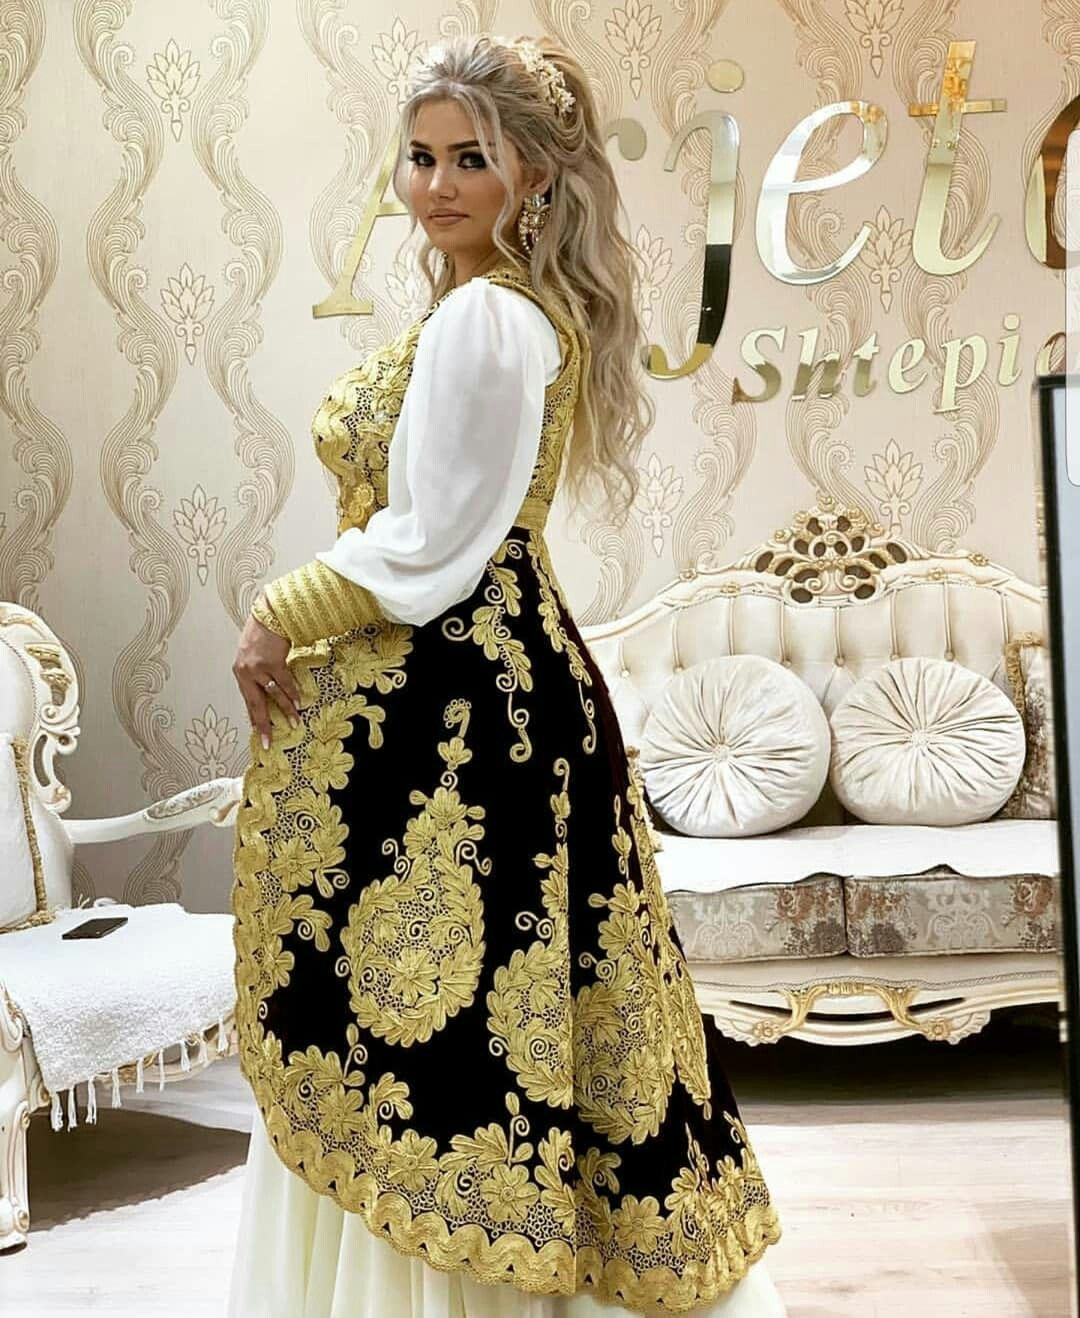 Pin By Xh G On Tenue Turque Et Balkan Soiree Dress Soiree Dresses For Hijab Simple Soiree Dress For Hijab